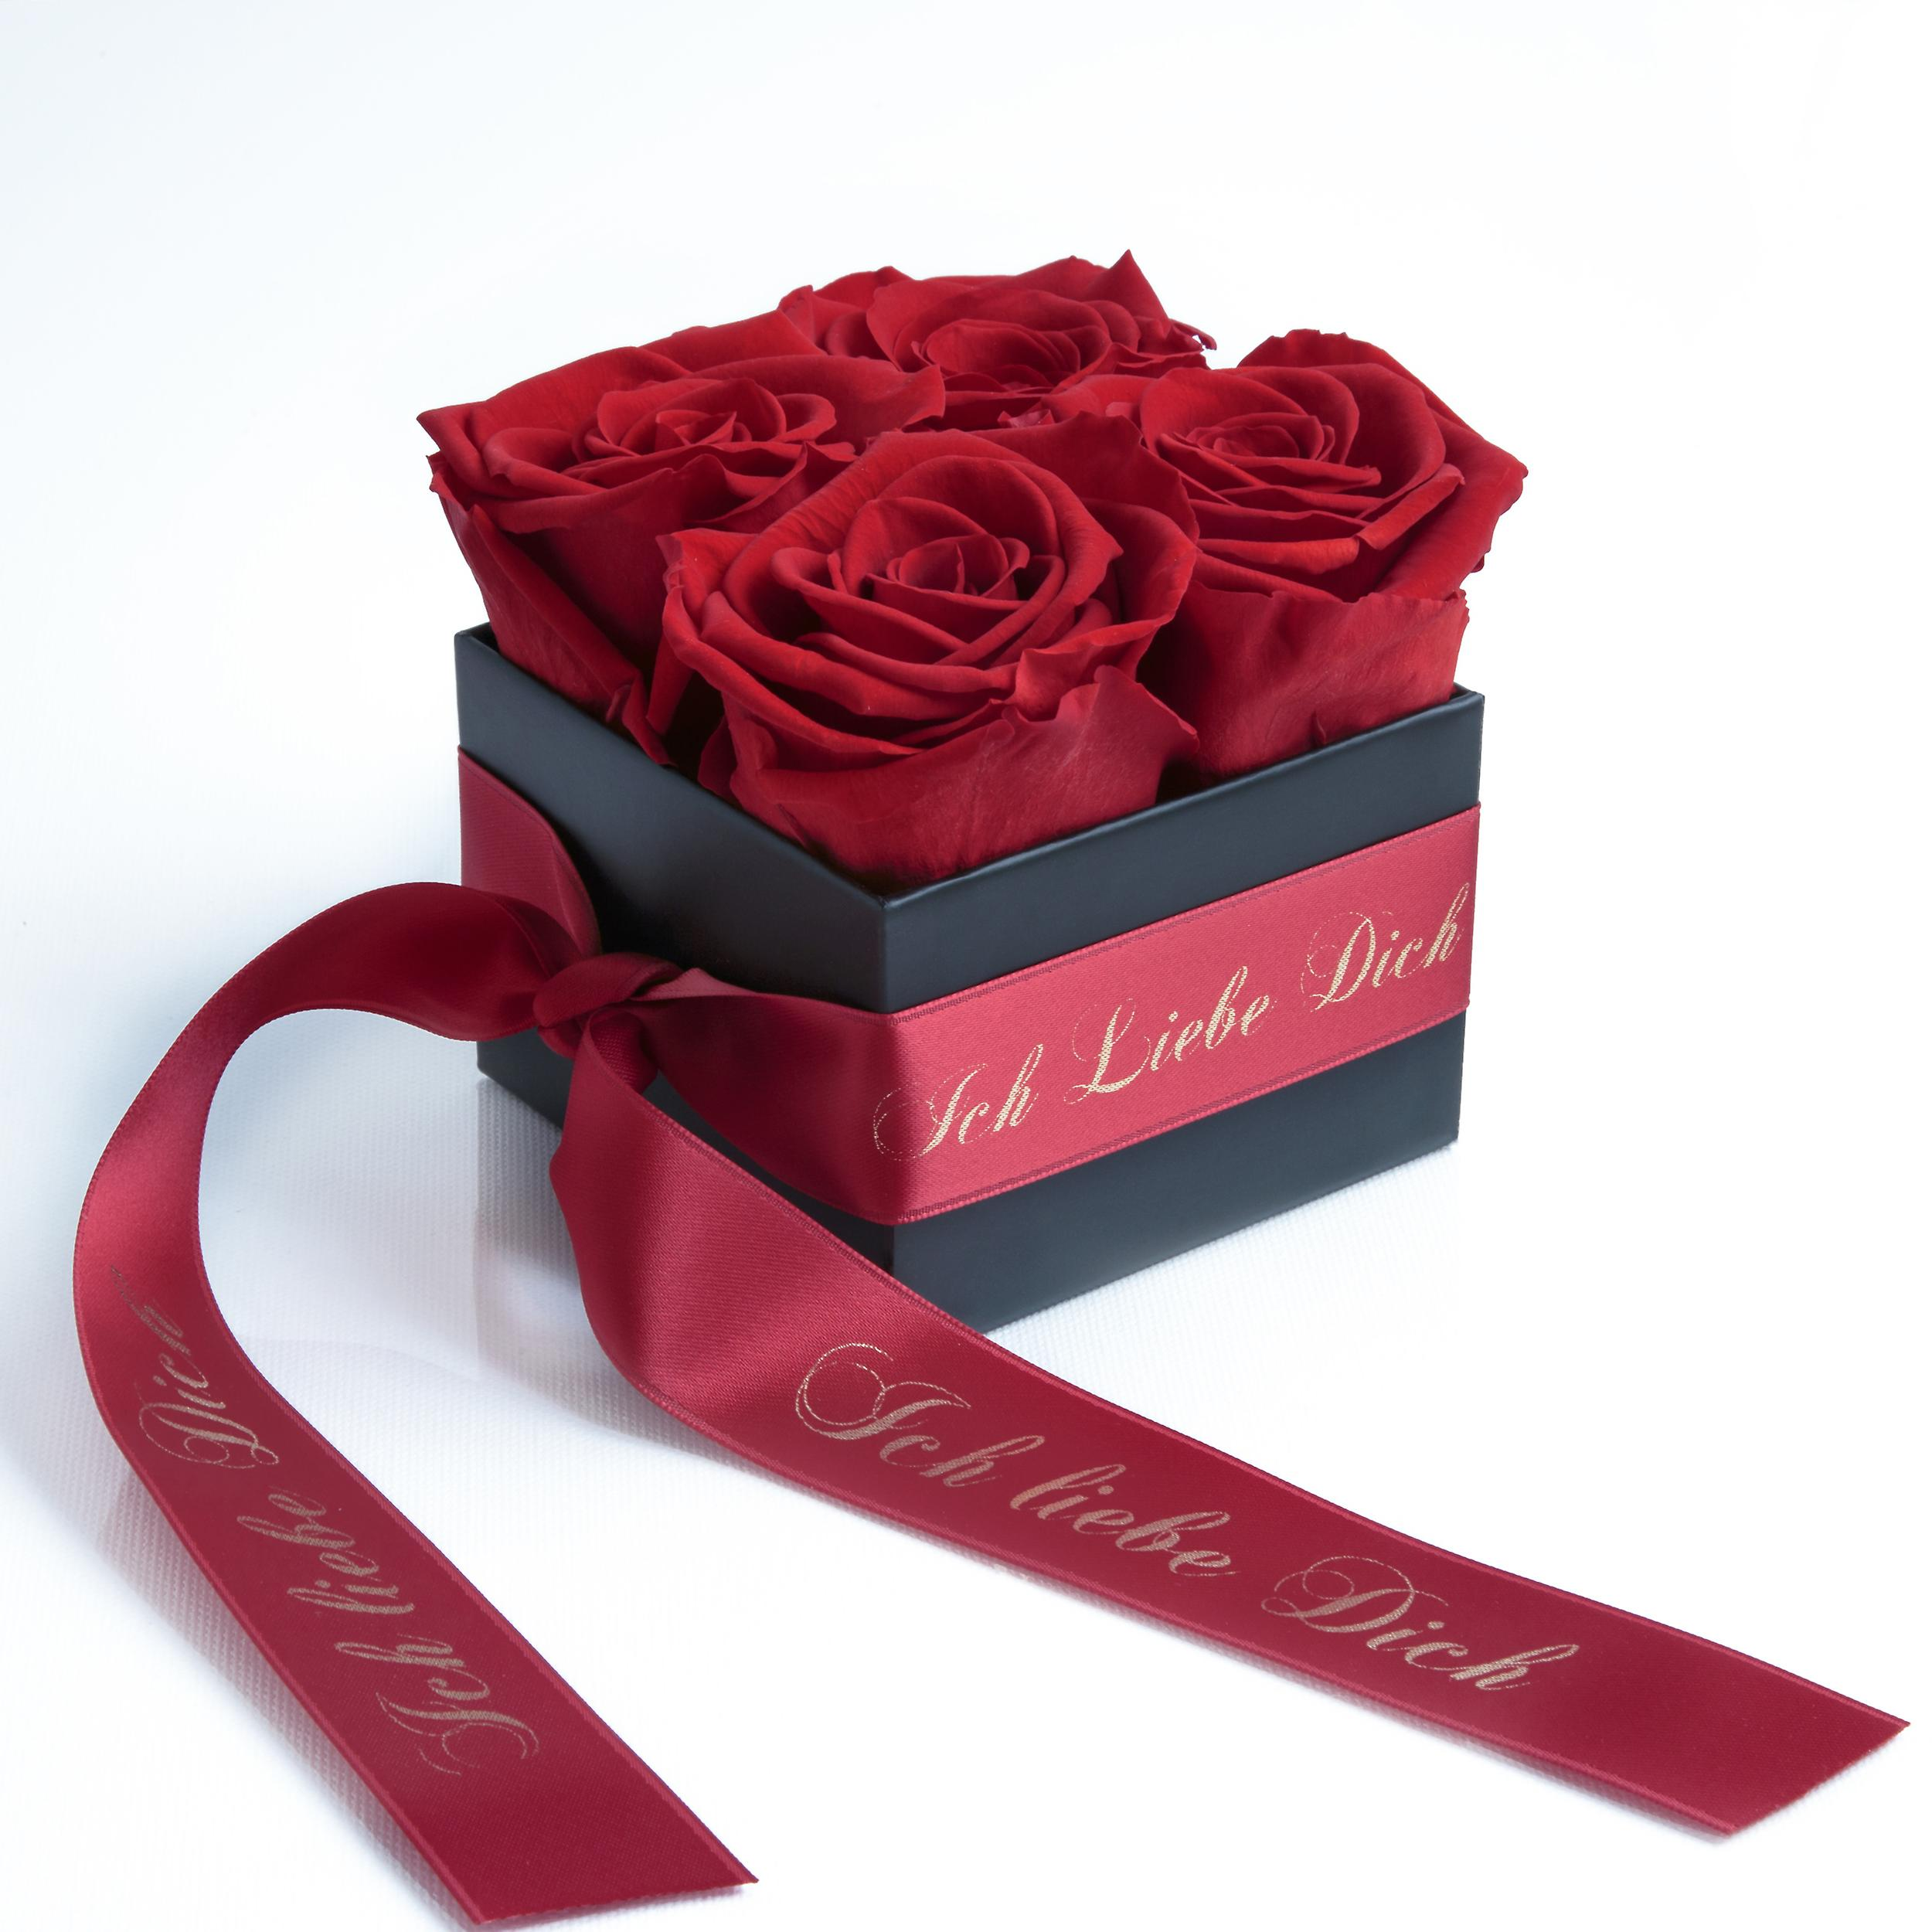 I love you box with 4 preserved roses red and satin band stable three years